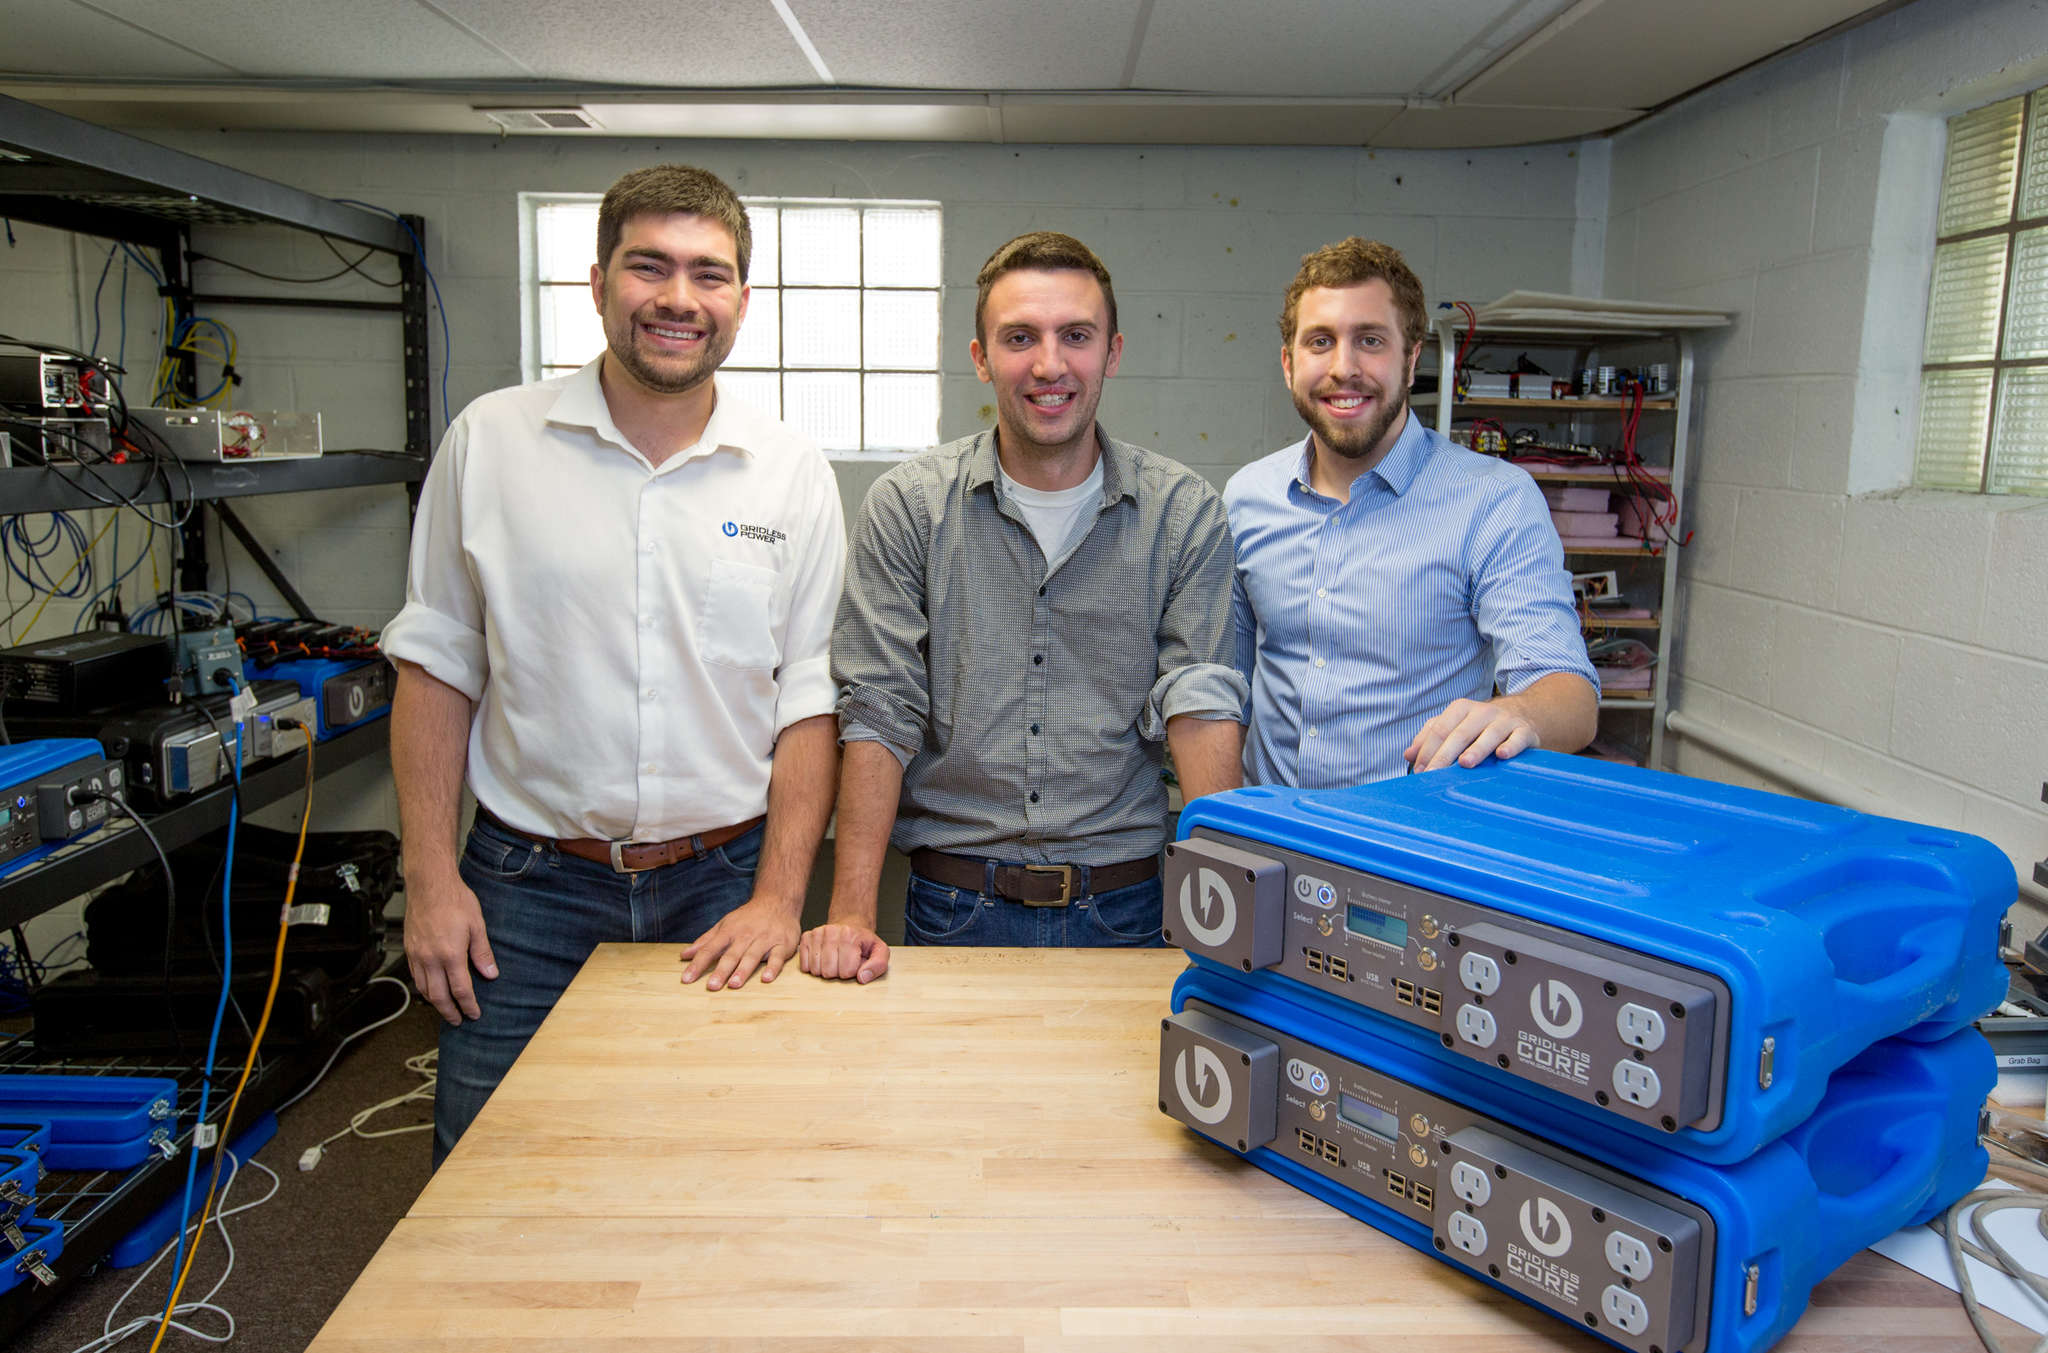 Friends since elementary school (from left) Andrew Leonard, Jason Halpern, and Patrick Murphy, all 29, formed Gridless Power, which makes portable battery packs, four years ago. They say the Stellar StartUps honor could not come at a better time for the growing Collingswood company to get the word out.